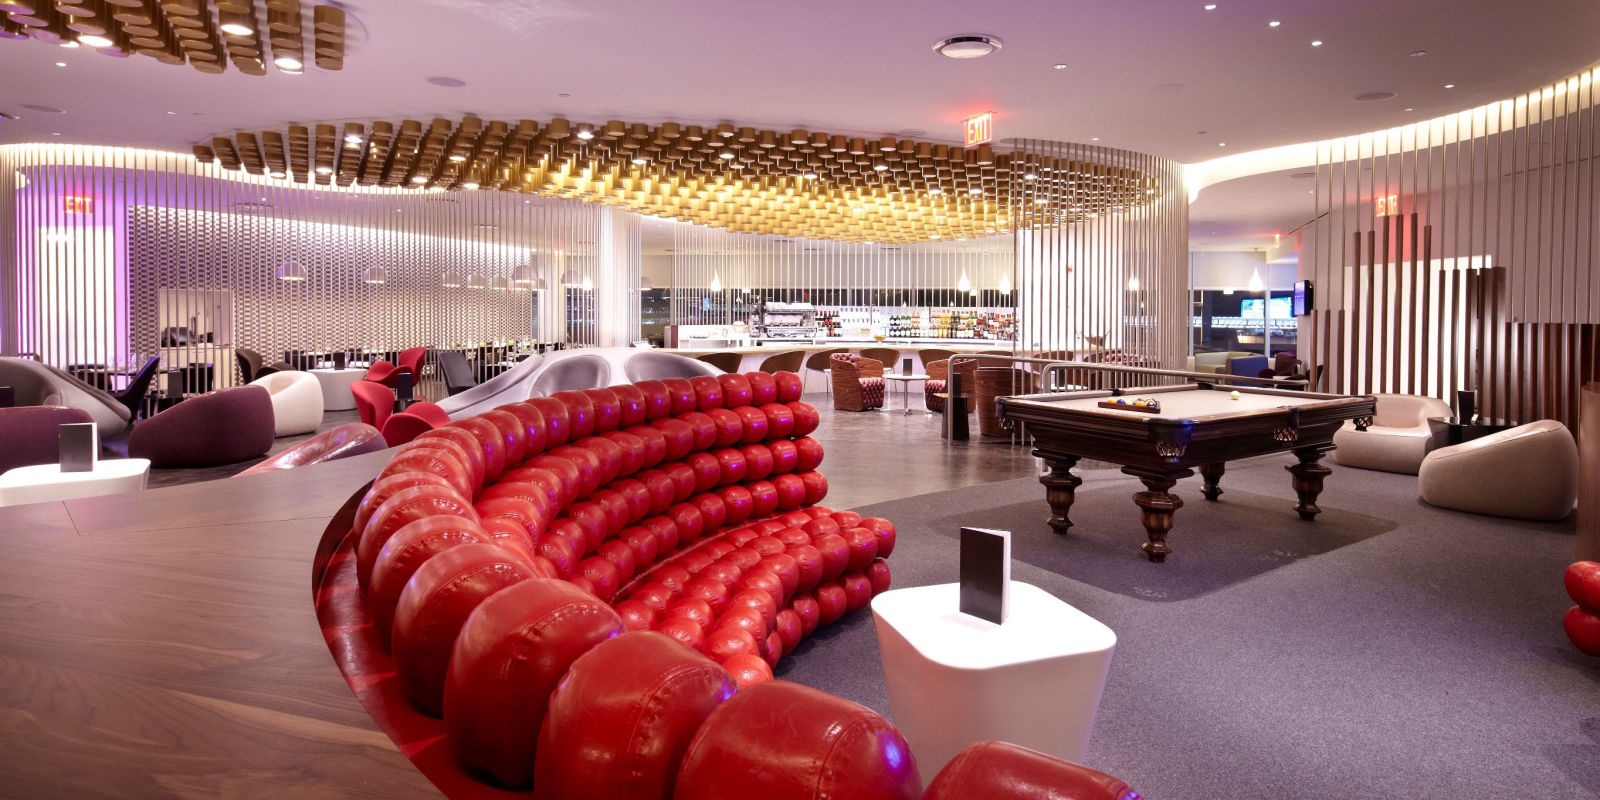 20 Best Airport Lounges Travel Tips And Advice